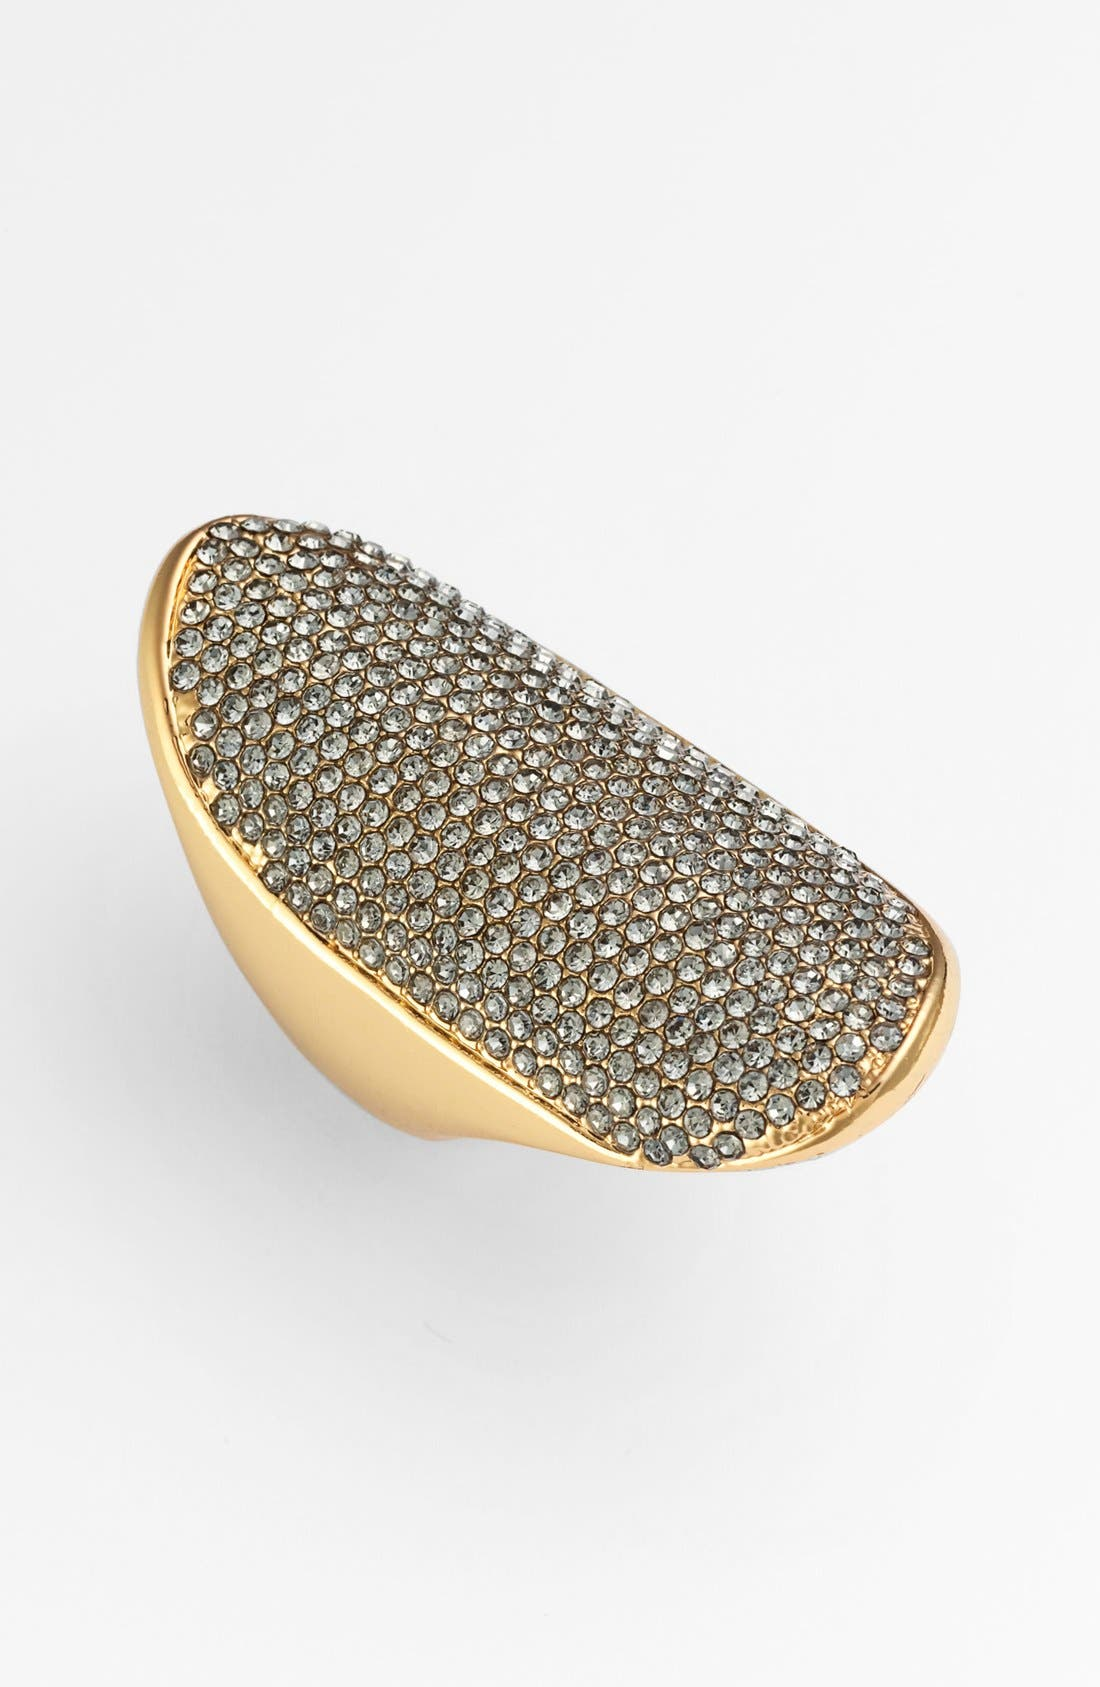 Alternate Image 1 Selected - Vince Camuto 'Flights of Fantasy' Large Pavé Ring